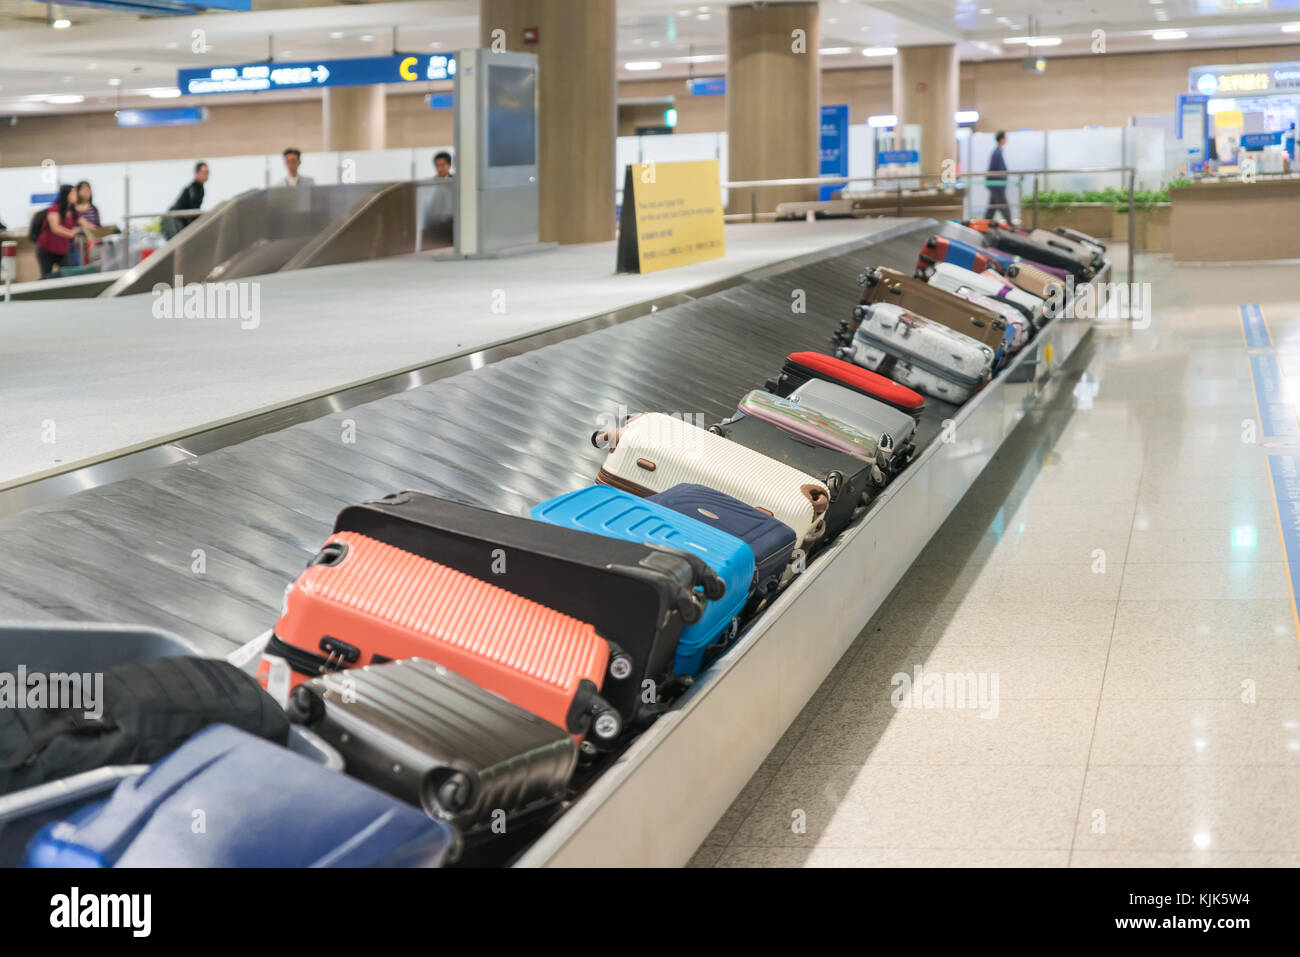 Suitcase or luggage with conveyor belt in the airport. - Stock Image